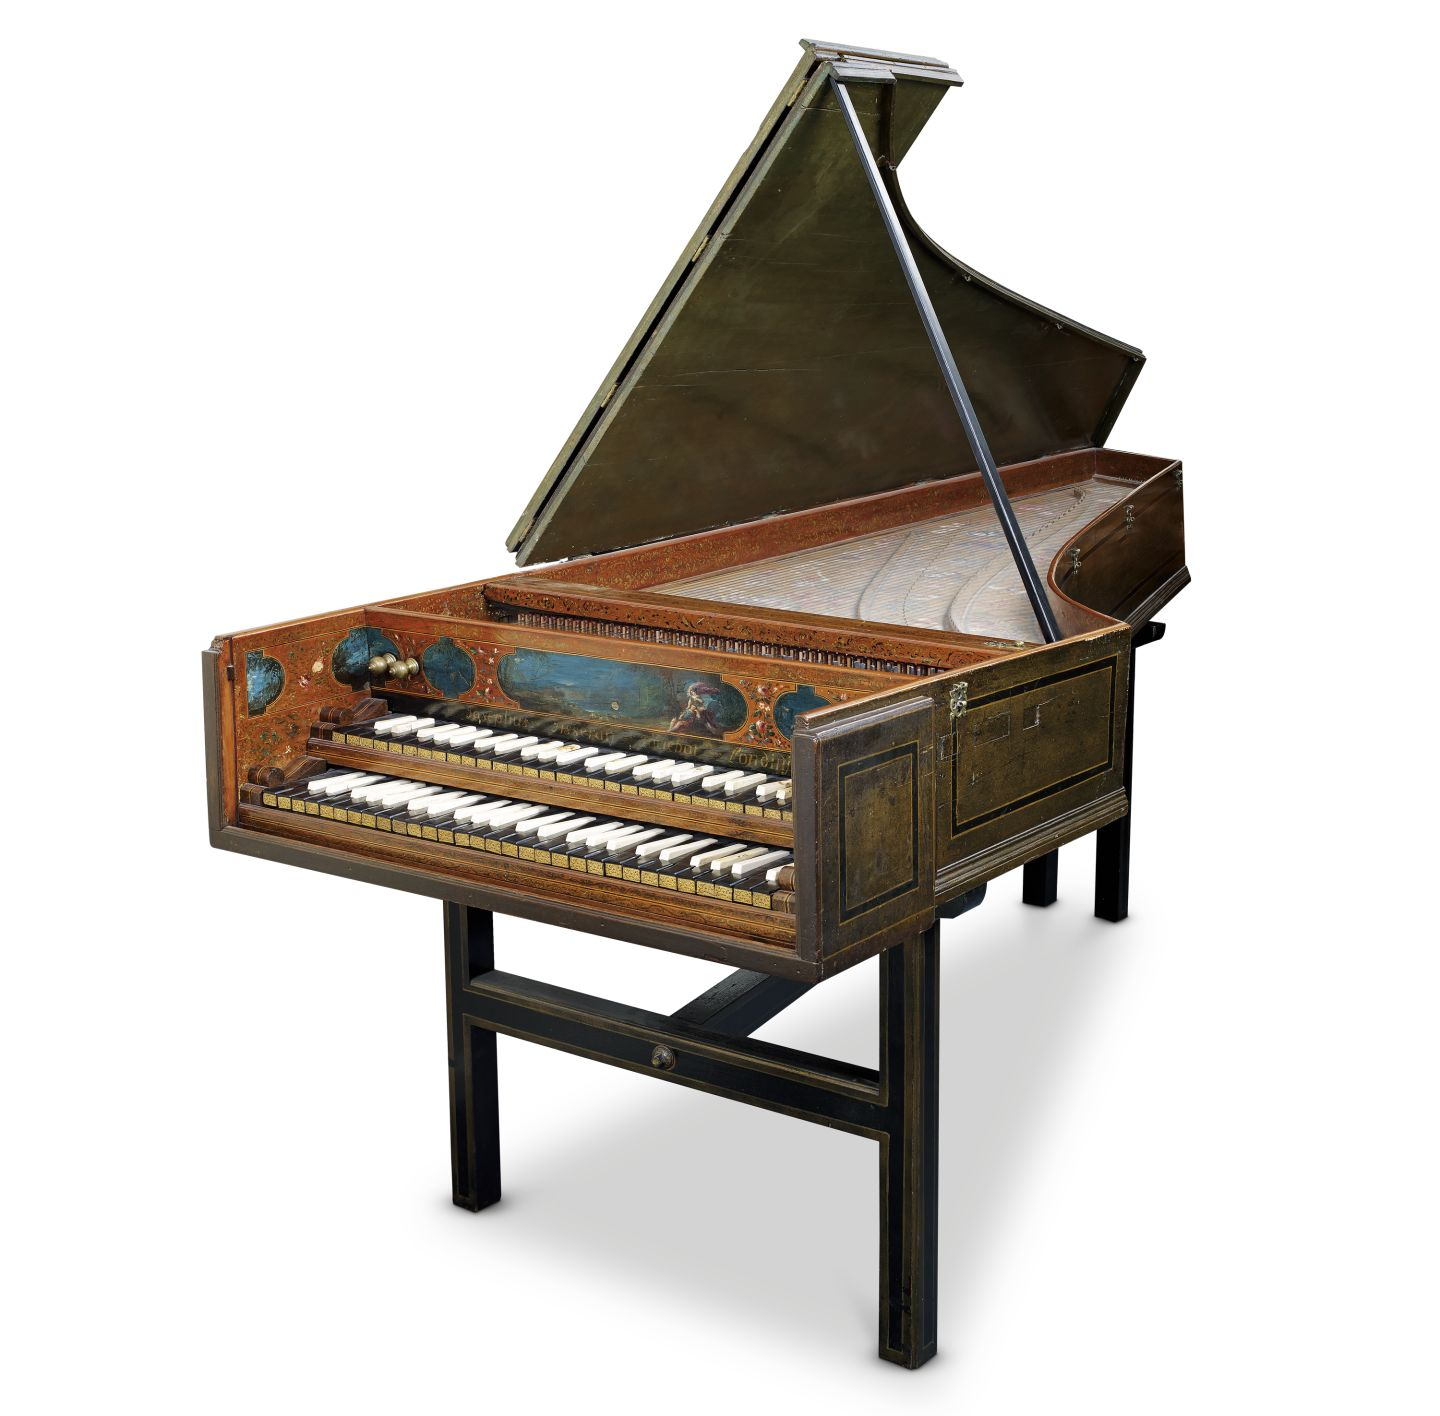 Harpsichord Facts   What Is A Harpsichord   DK Find Out